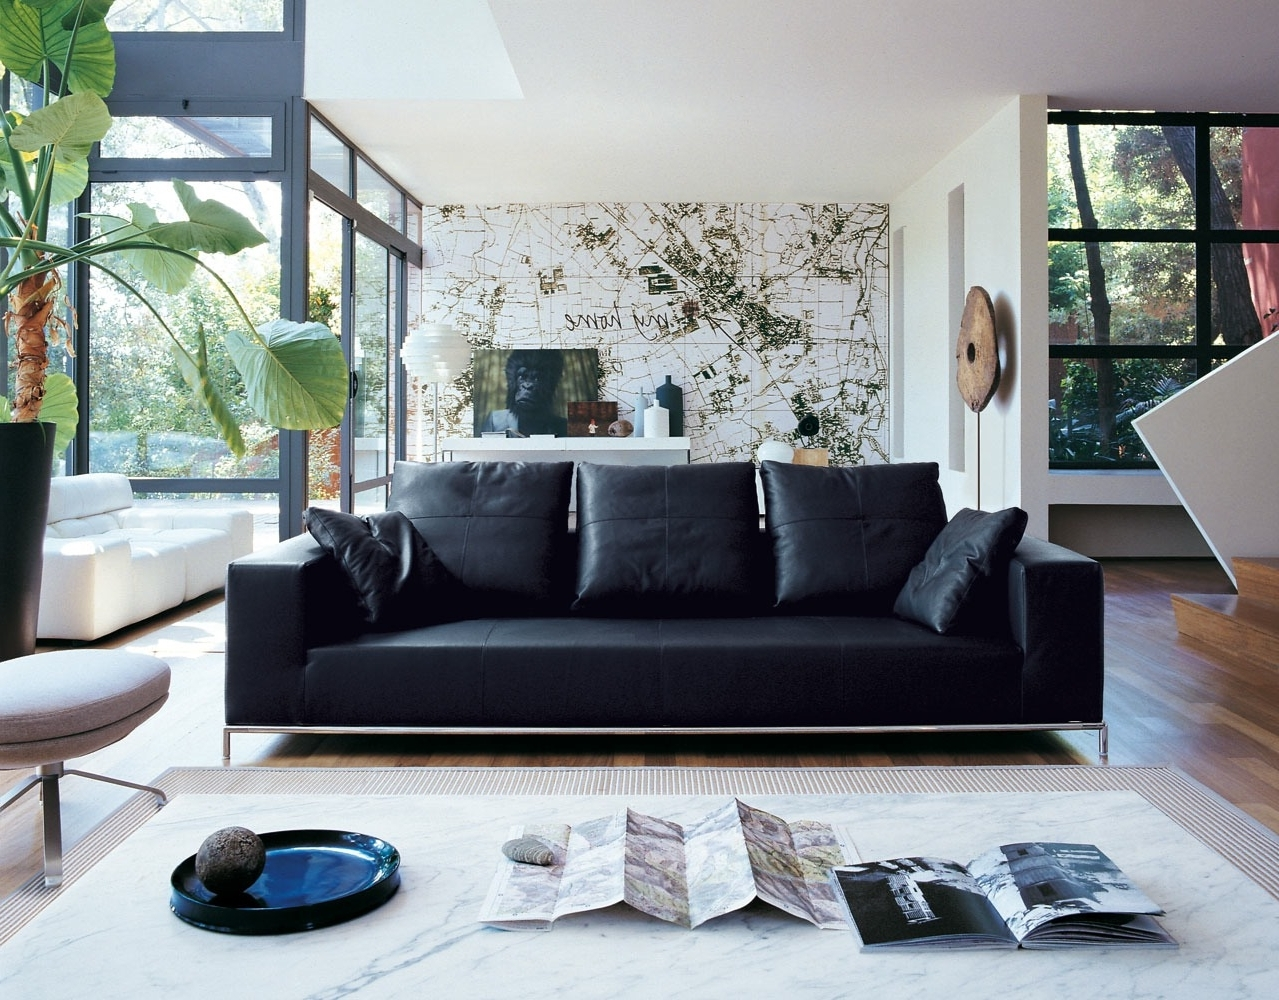 Decorating A Room With Black Leather Sofa Homedecorite Living Room Decorating Black Leather Couch